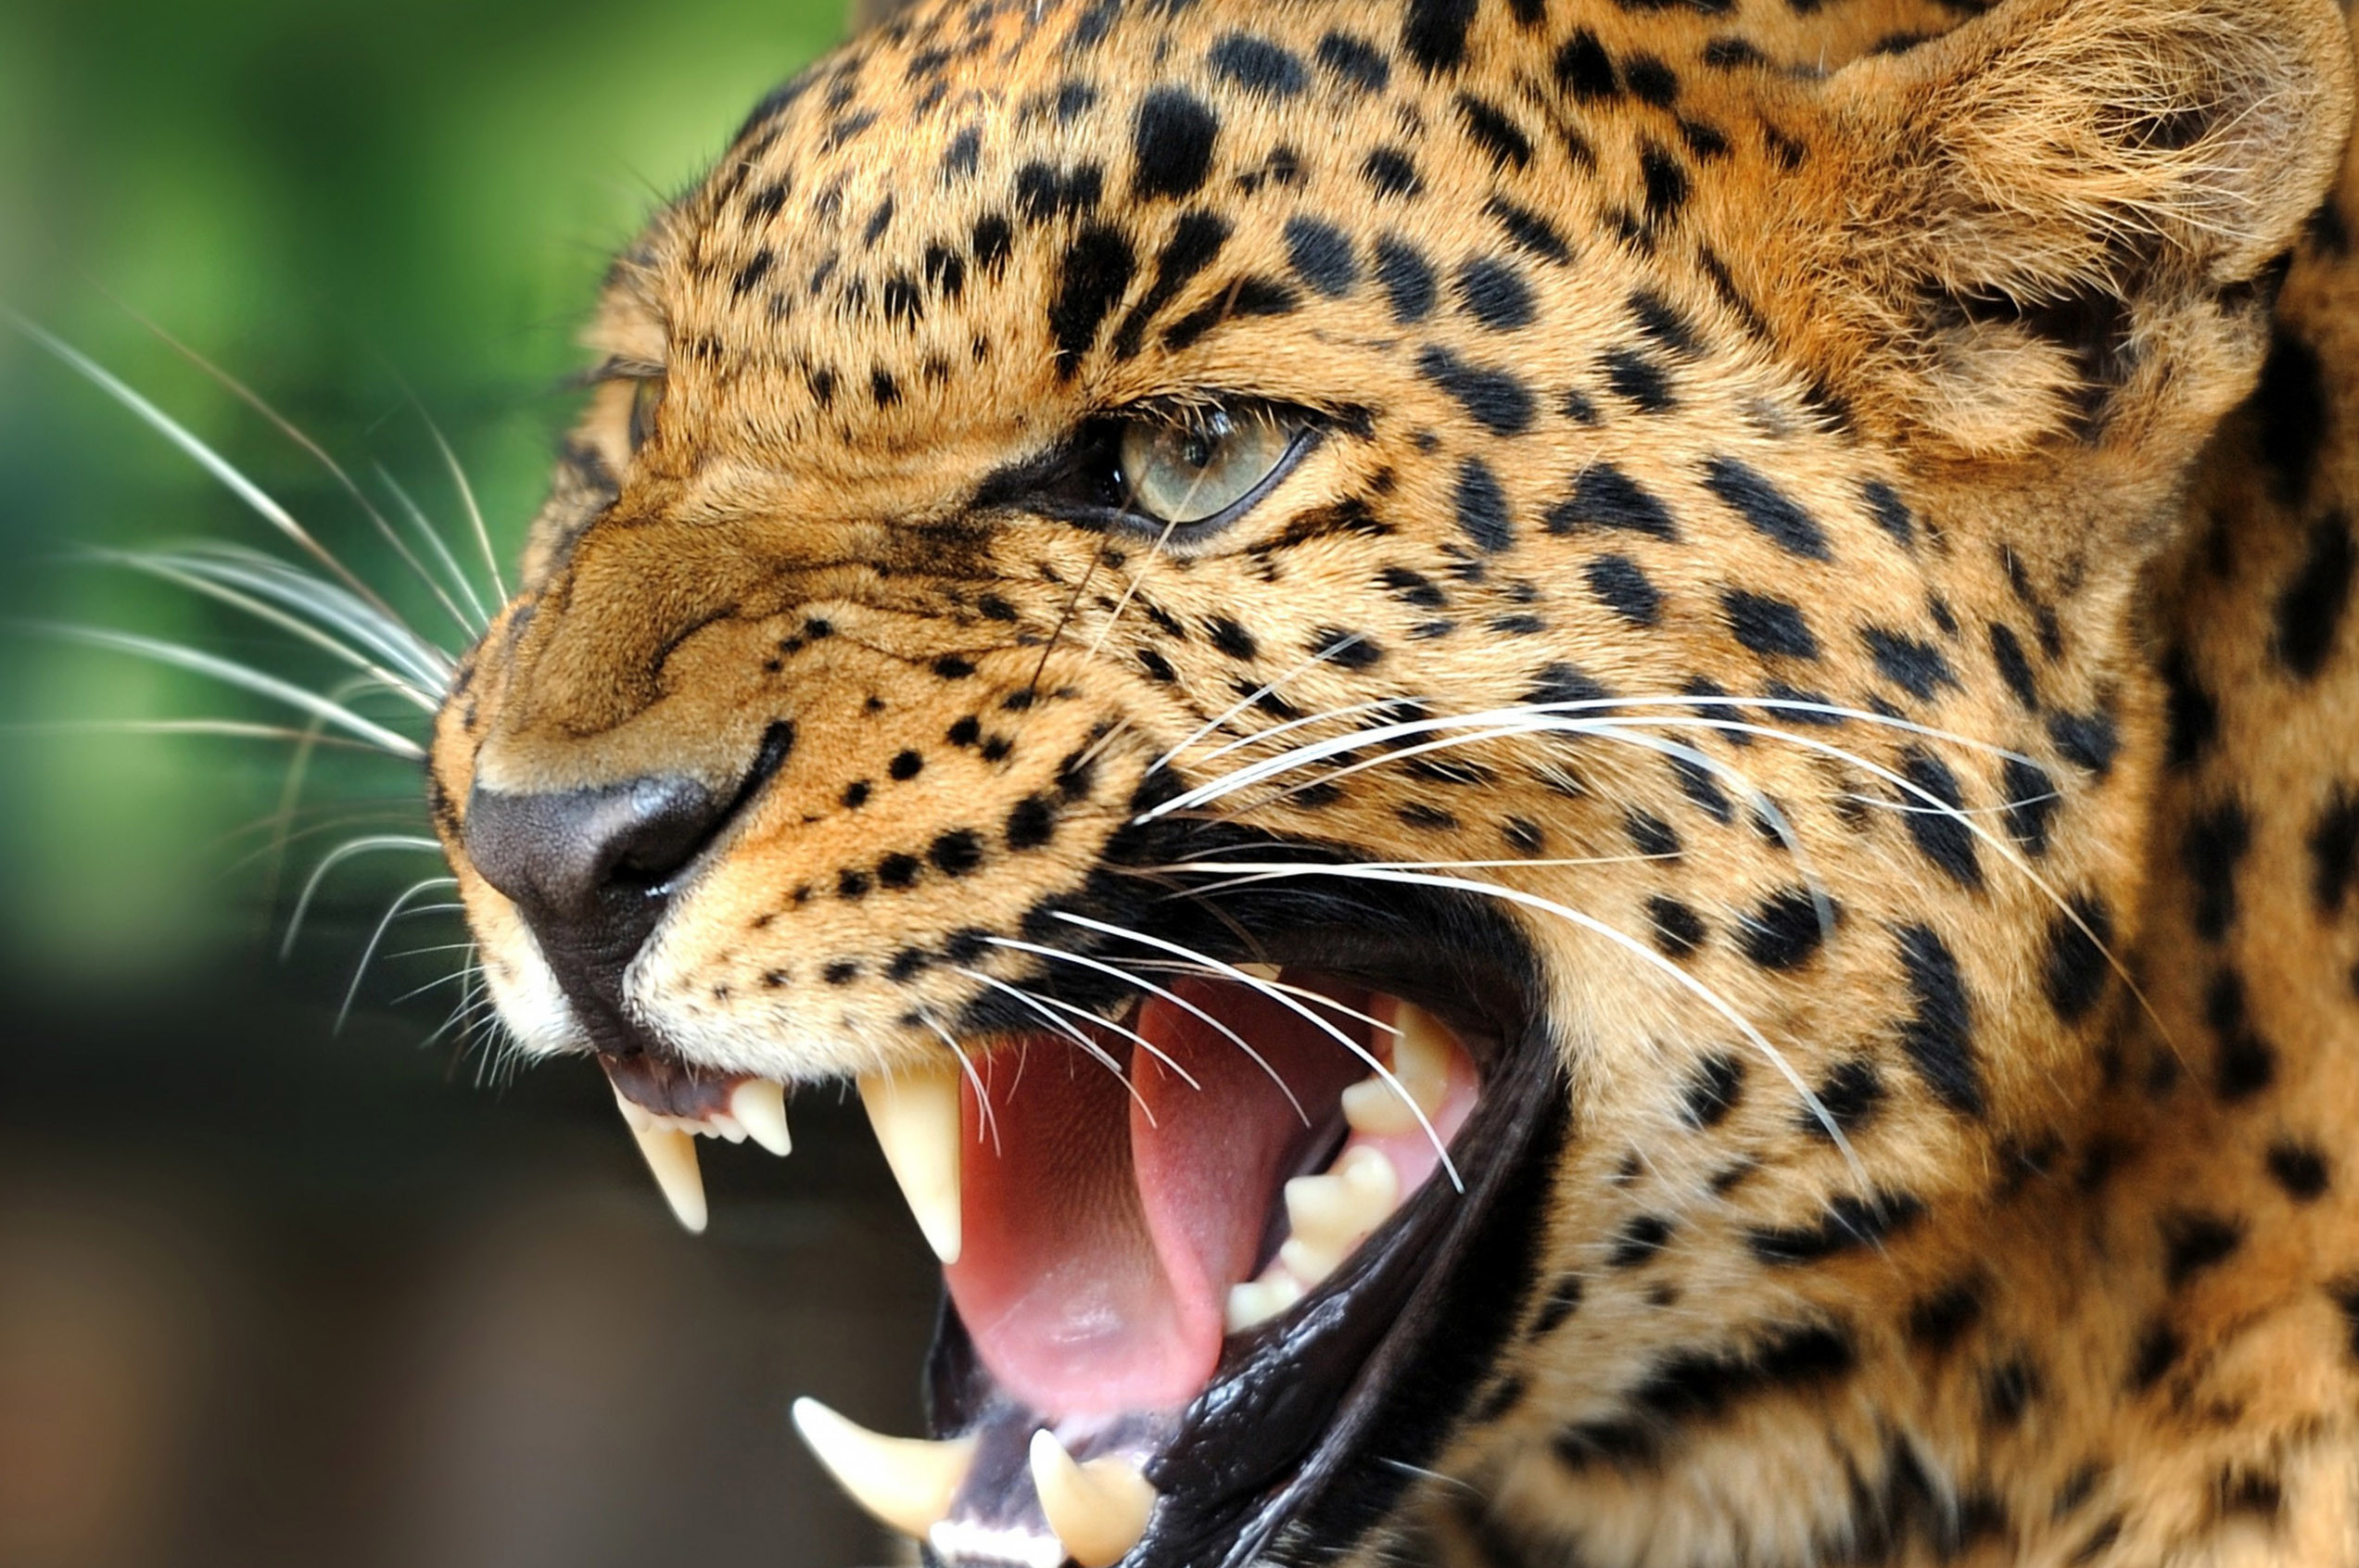 animals images hd free download